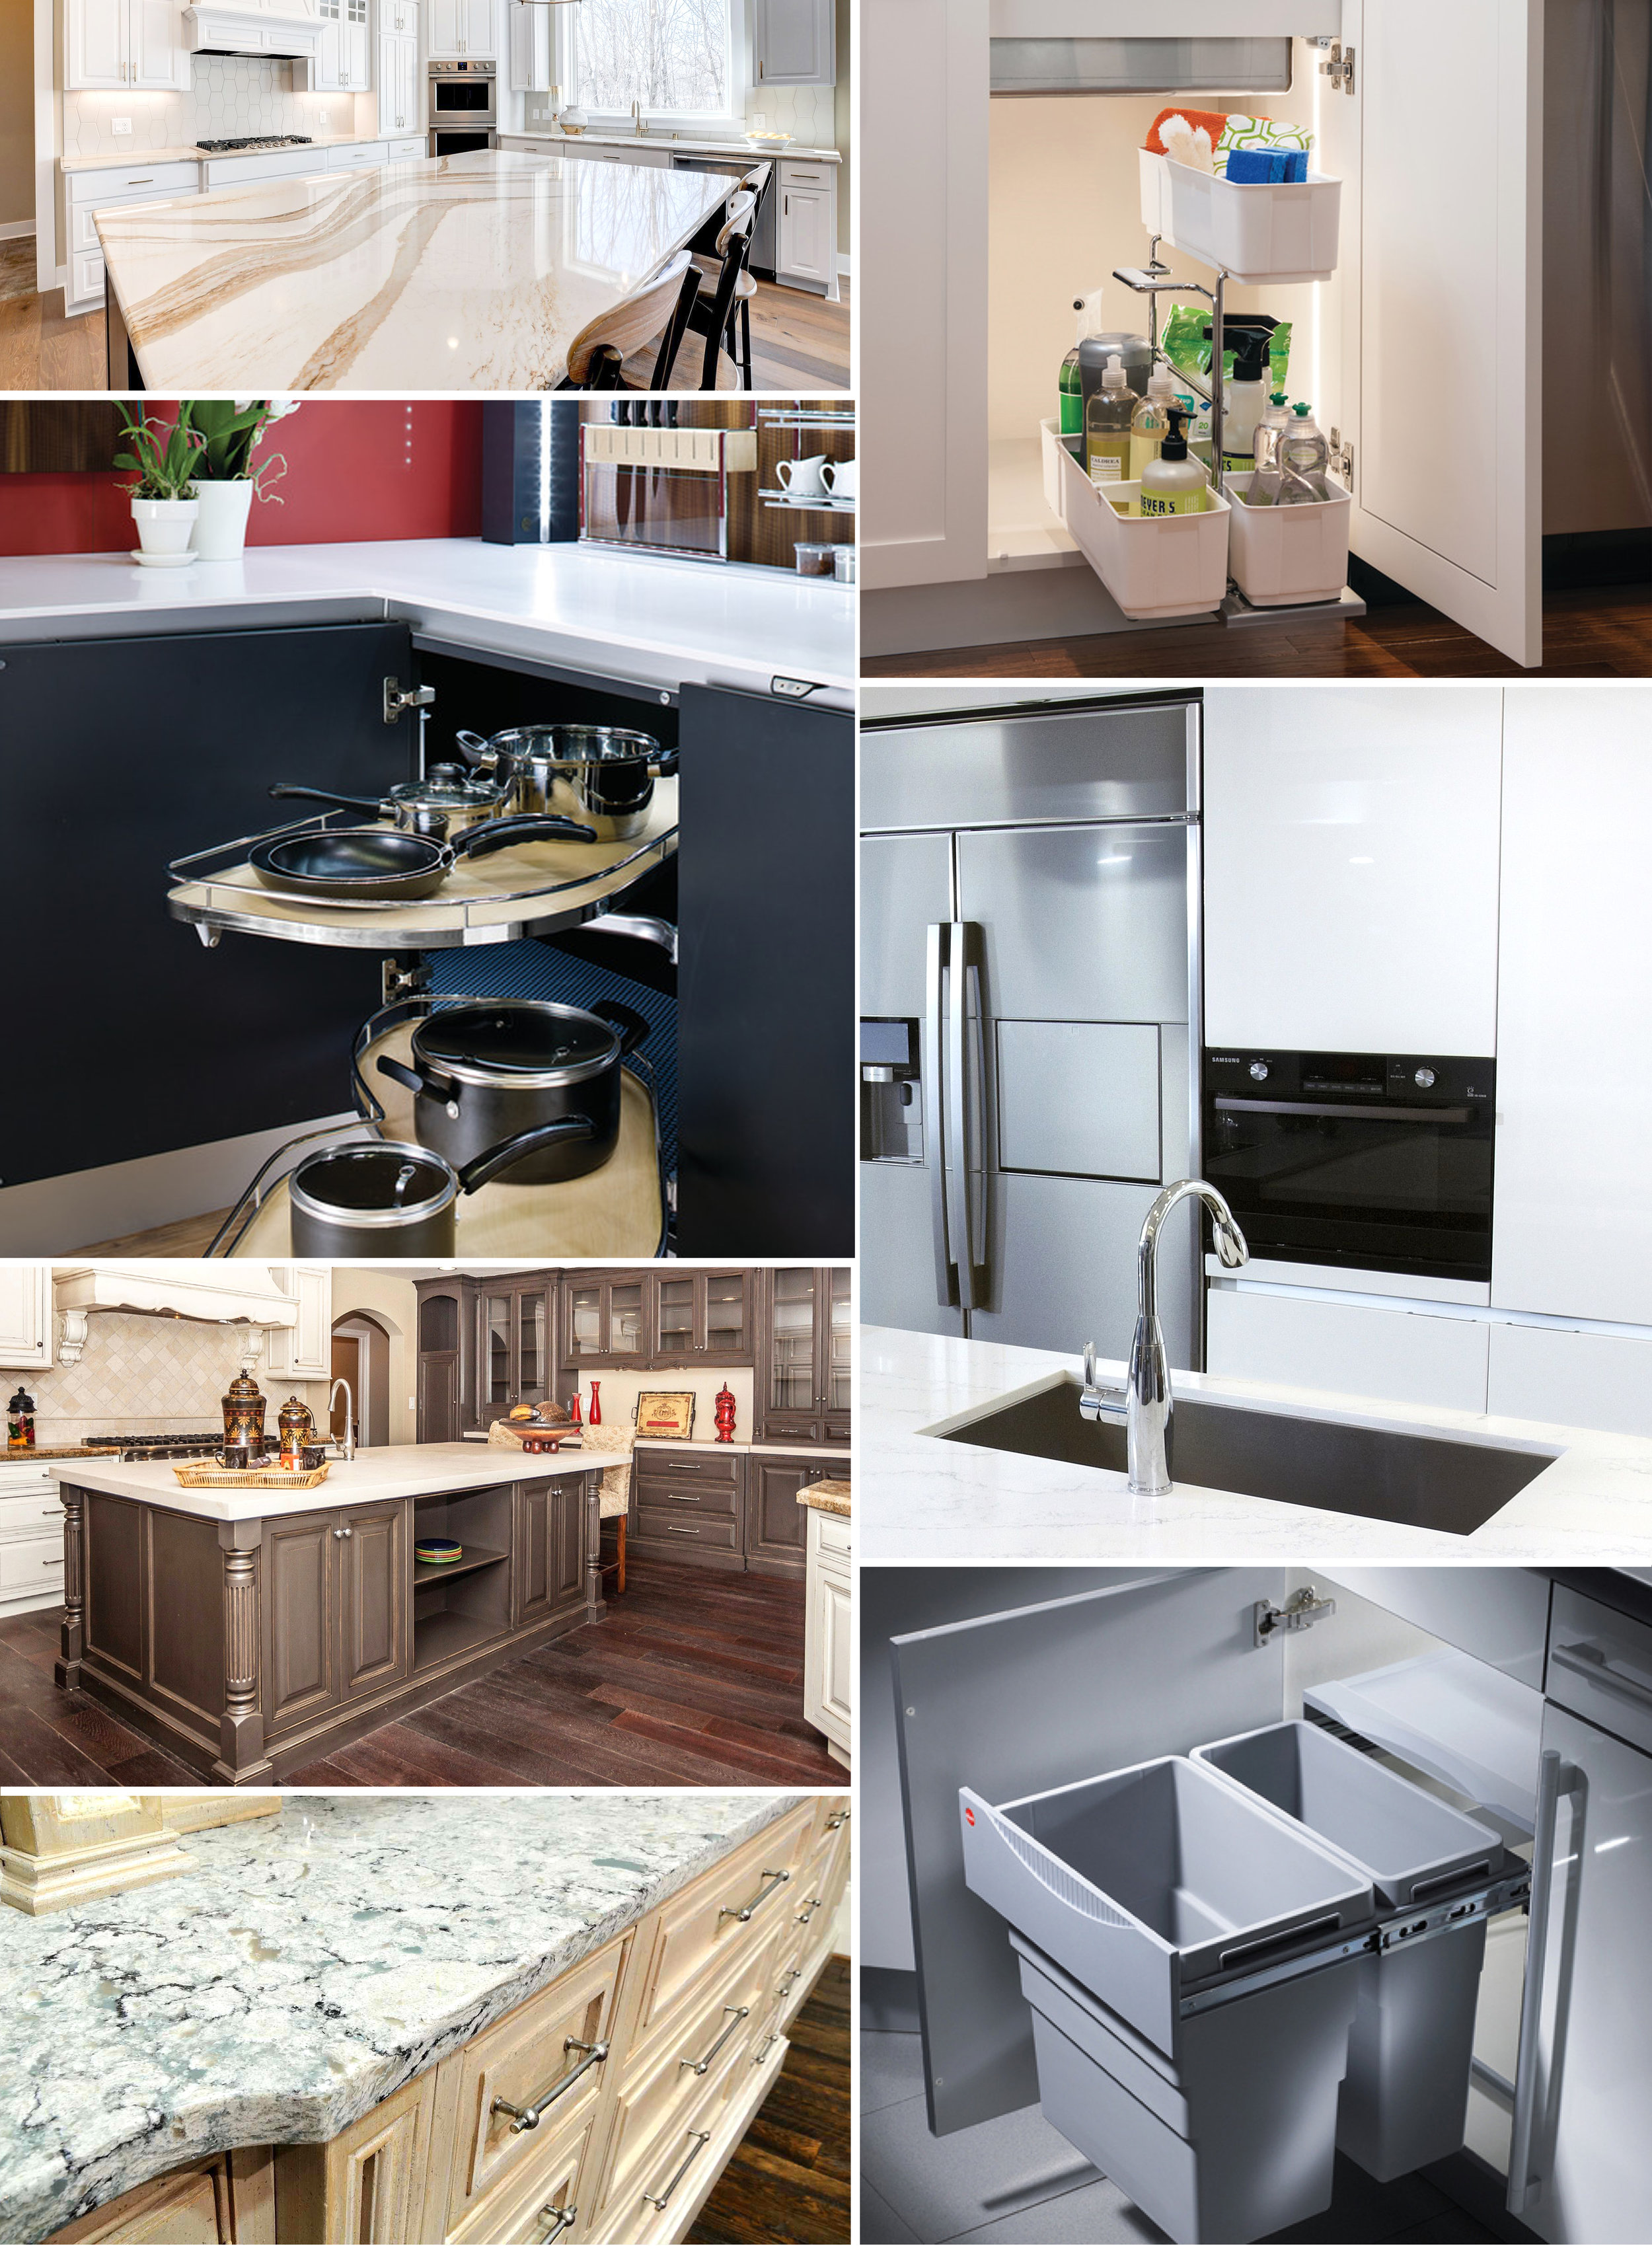 *Countertops available for installation with cabinet install only.